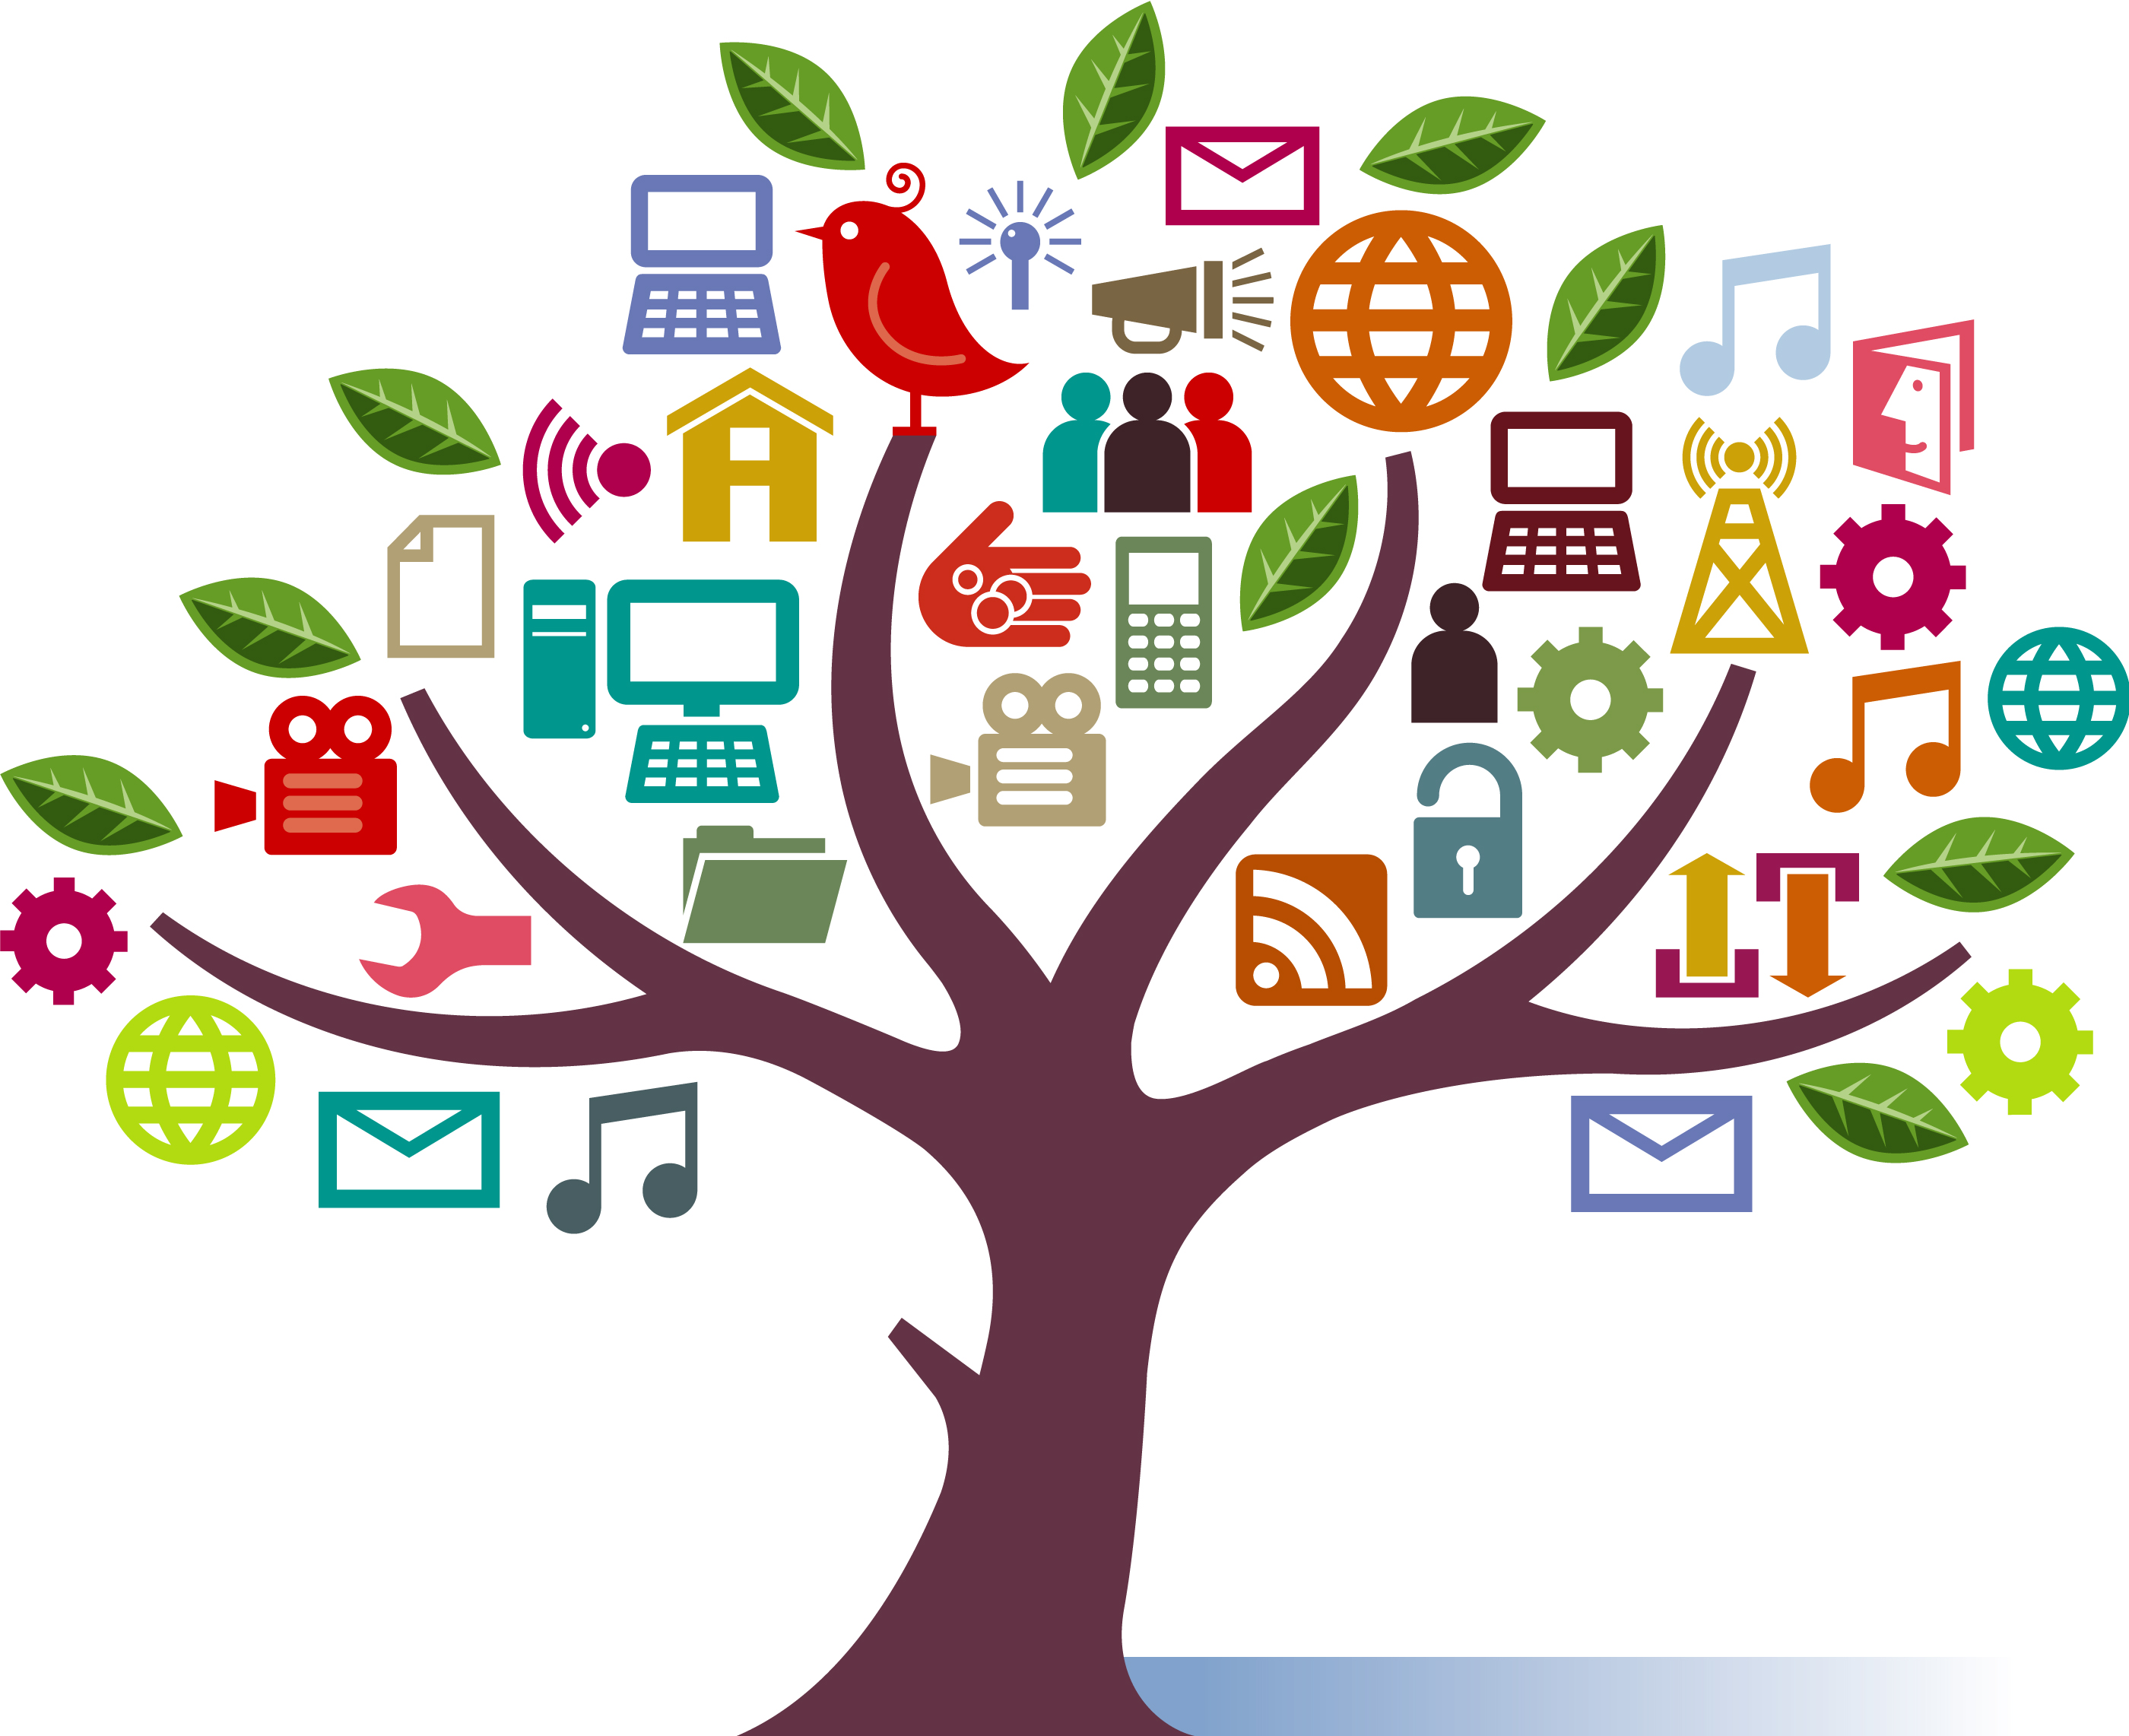 Drawing of a tree covered in social media, communication and web design icons